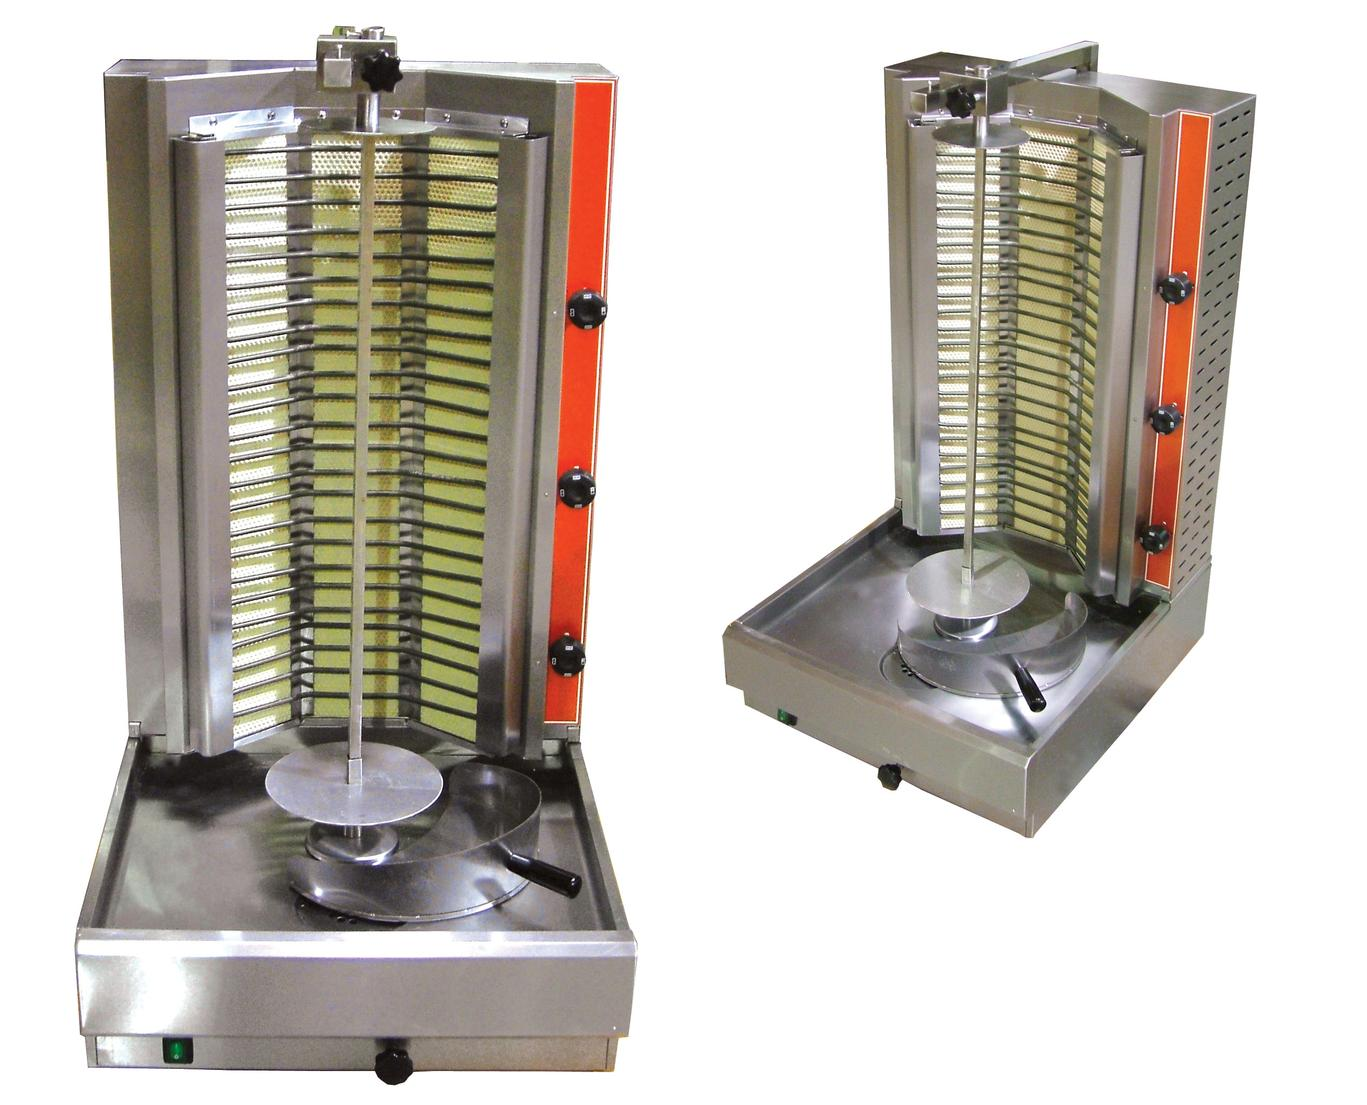 Vertical Gyro Shawarma Broiler Stainless Steel Sub